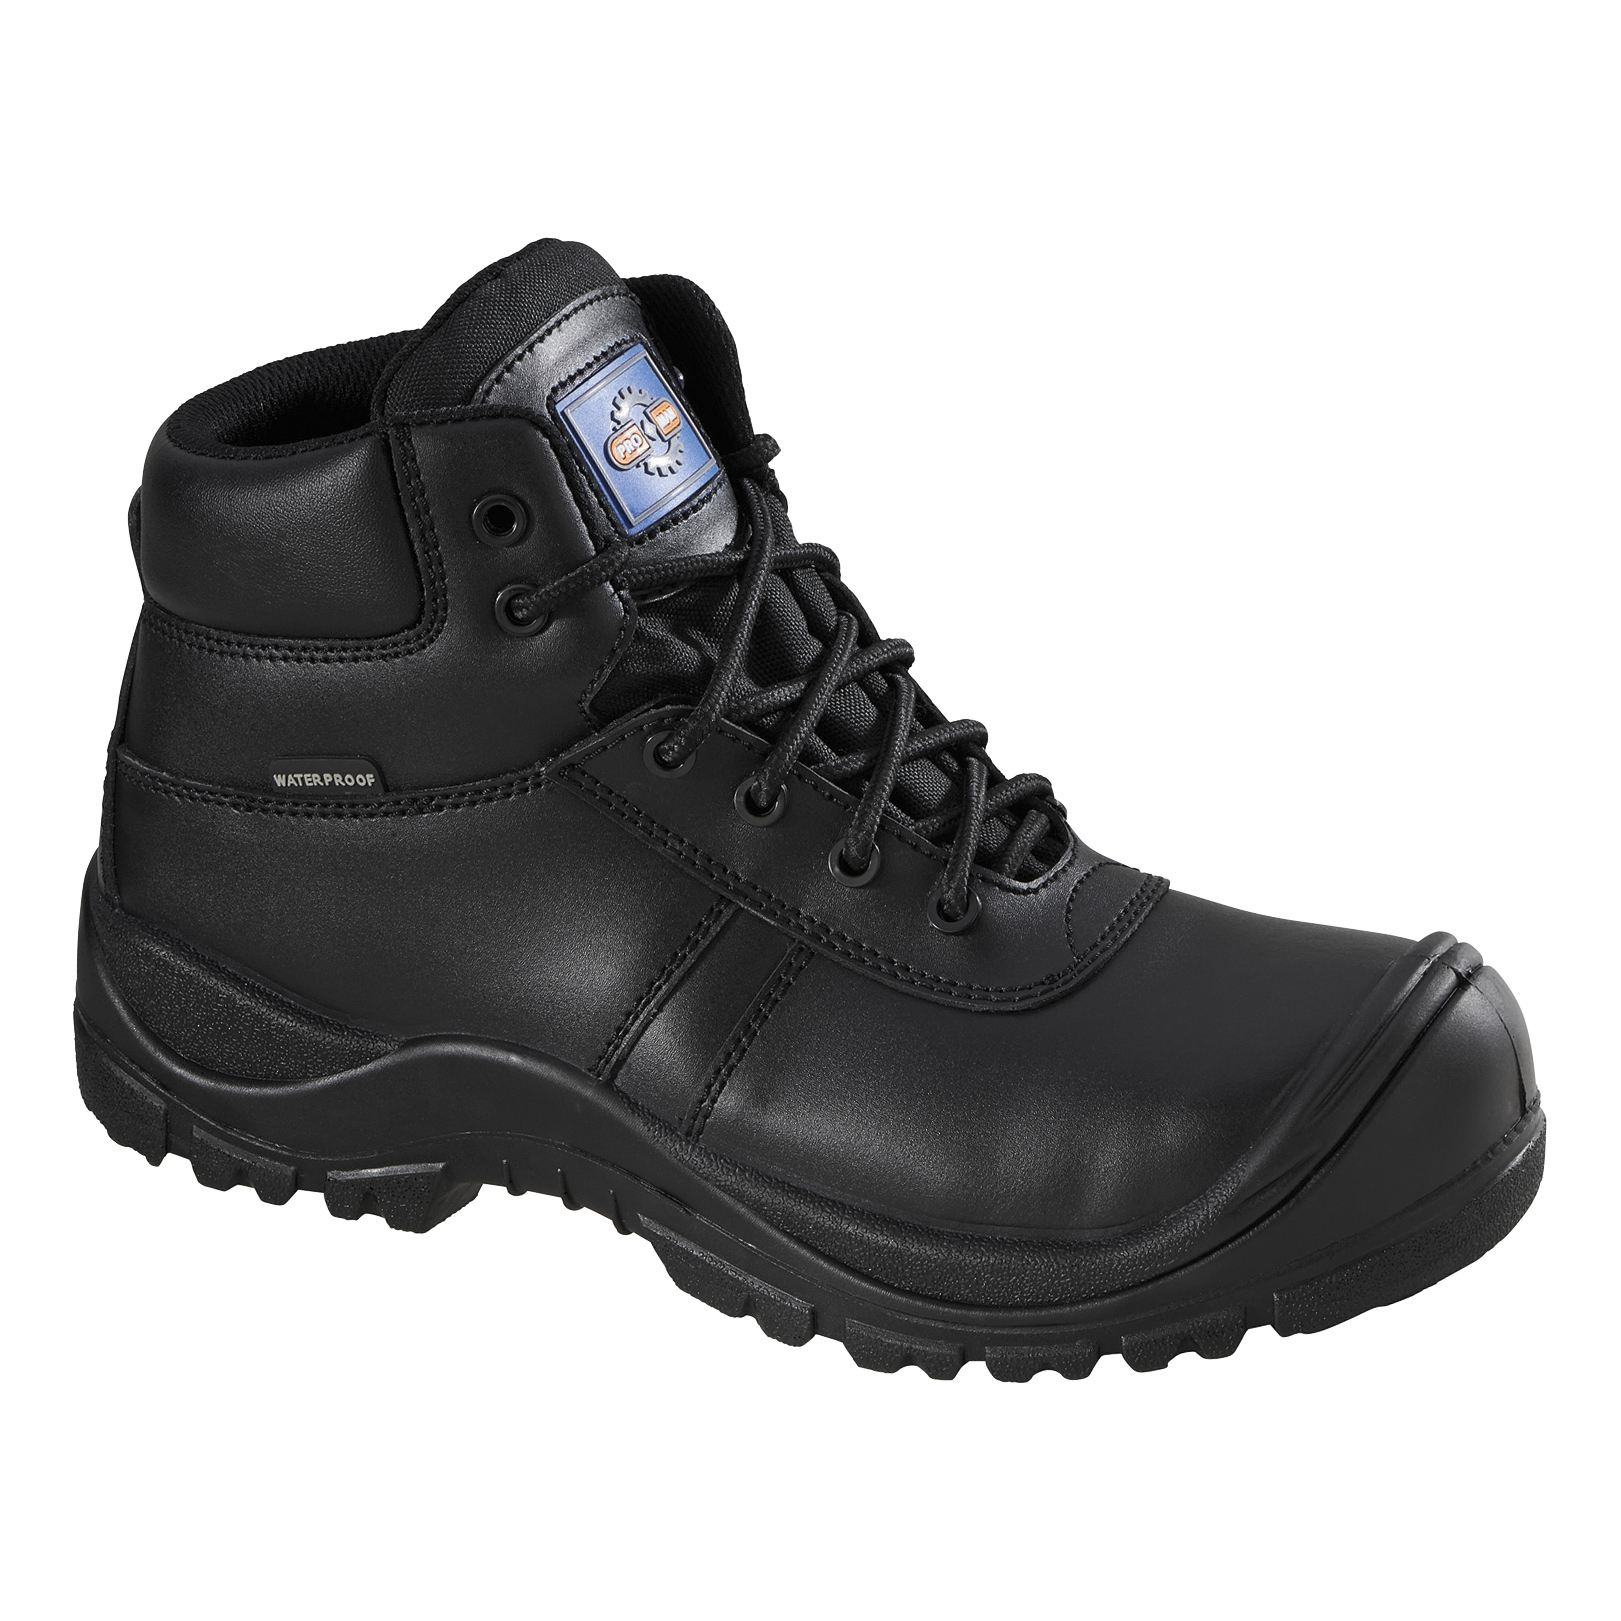 Rockfall Proman Boot Leather Waterproof 100% Non-Metallic Size 10 Black Ref PM4008-10 5-7 Day Leadtime